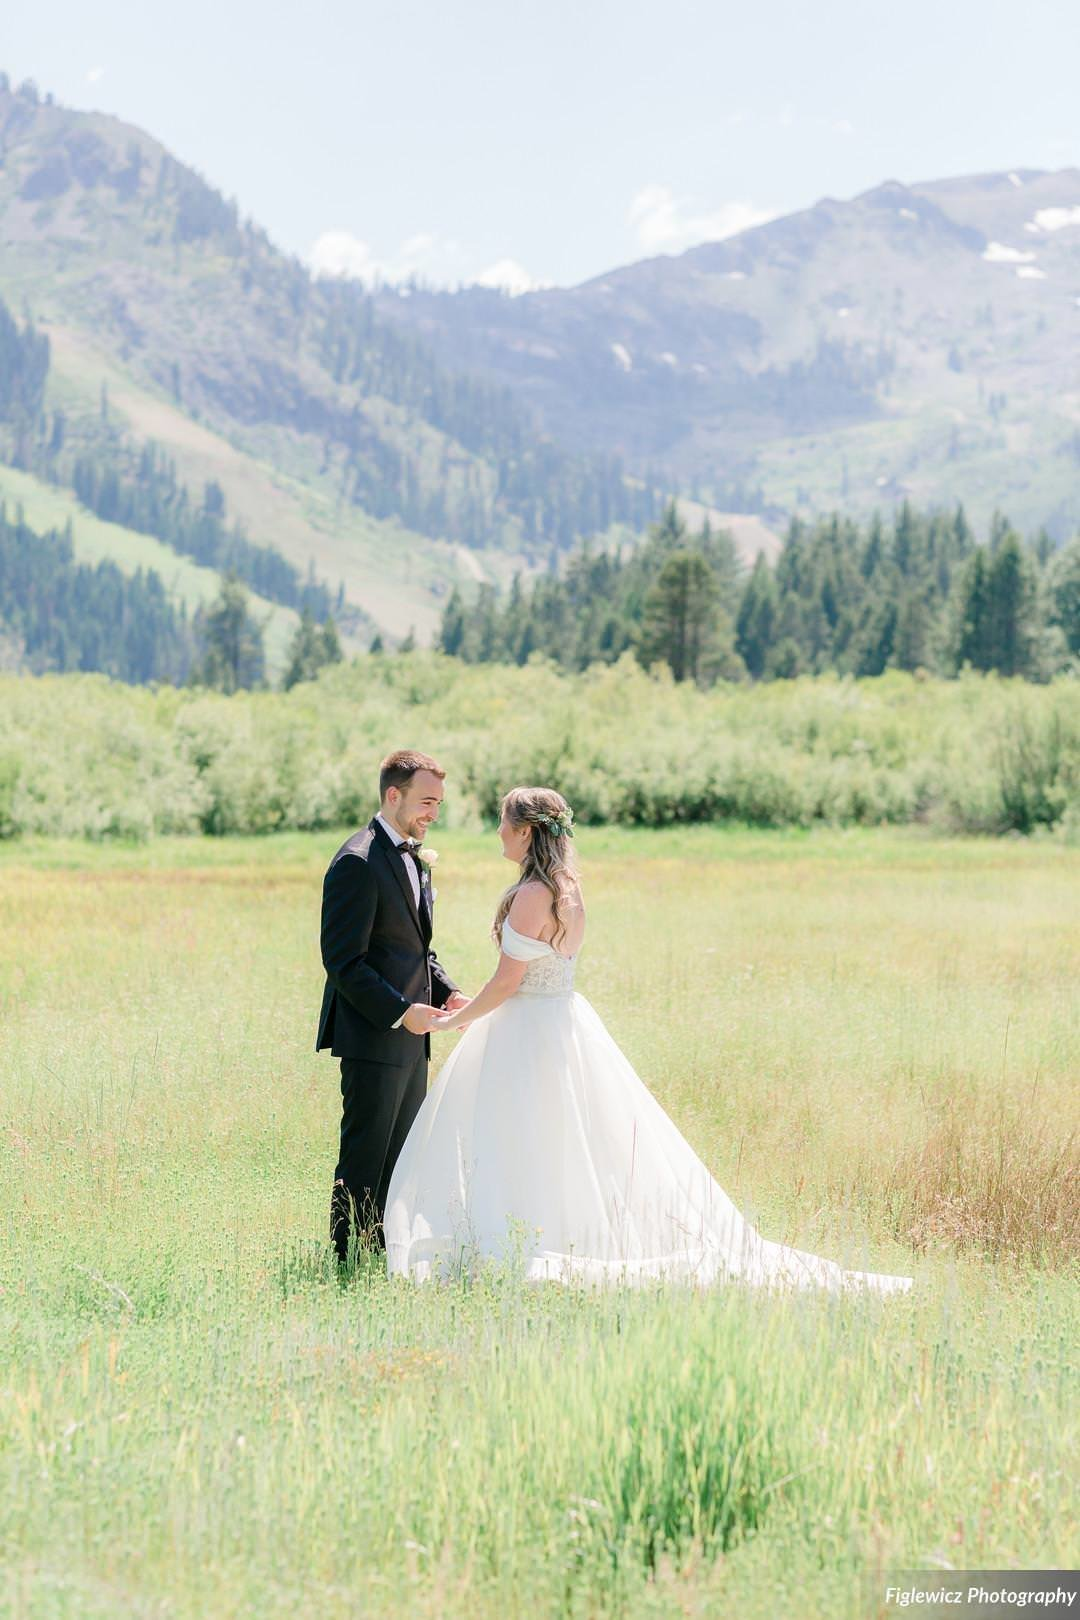 Garden_Tinsley_FiglewiczPhotography_LakeTahoeWeddingSquawValleyCreekTaylorBrendan00020_big